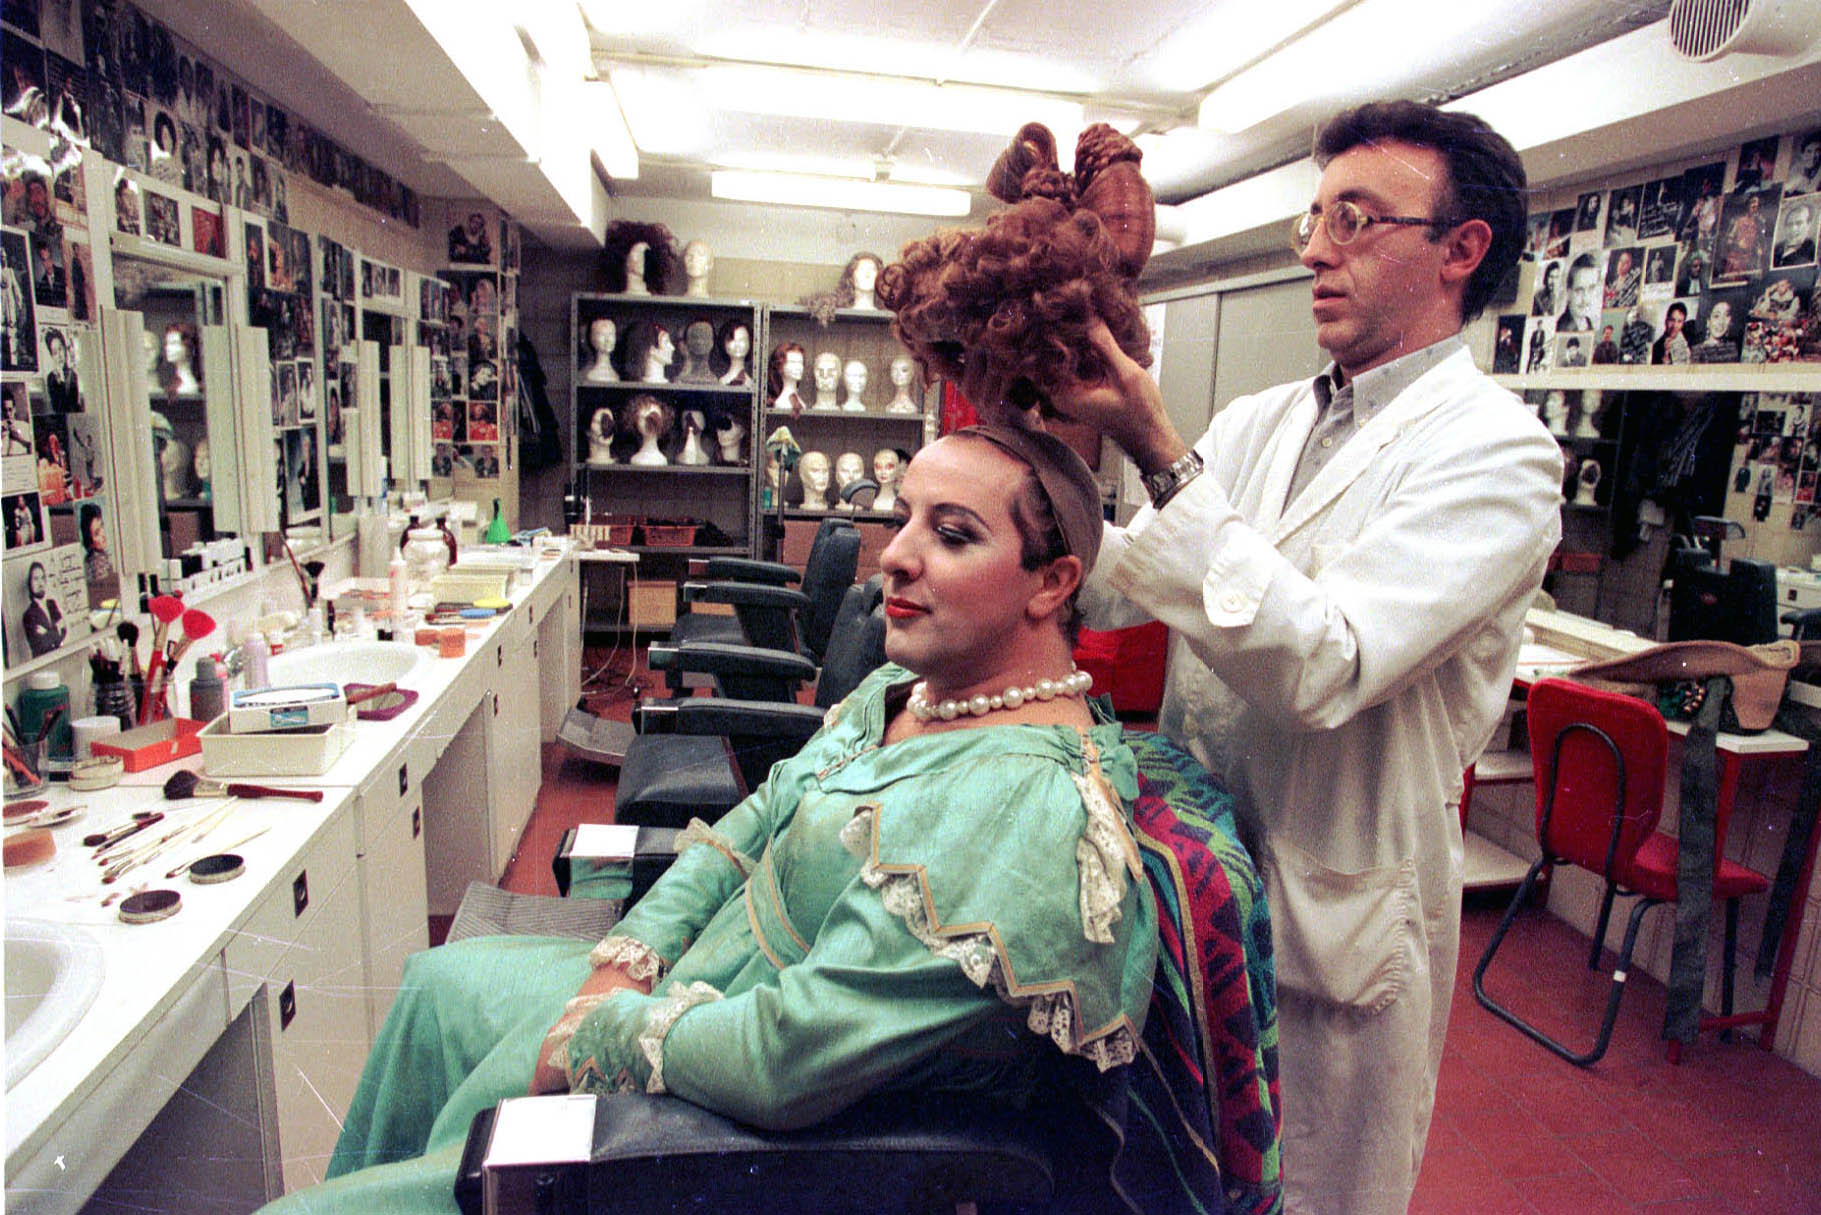 The preparation of the character in the make-up room